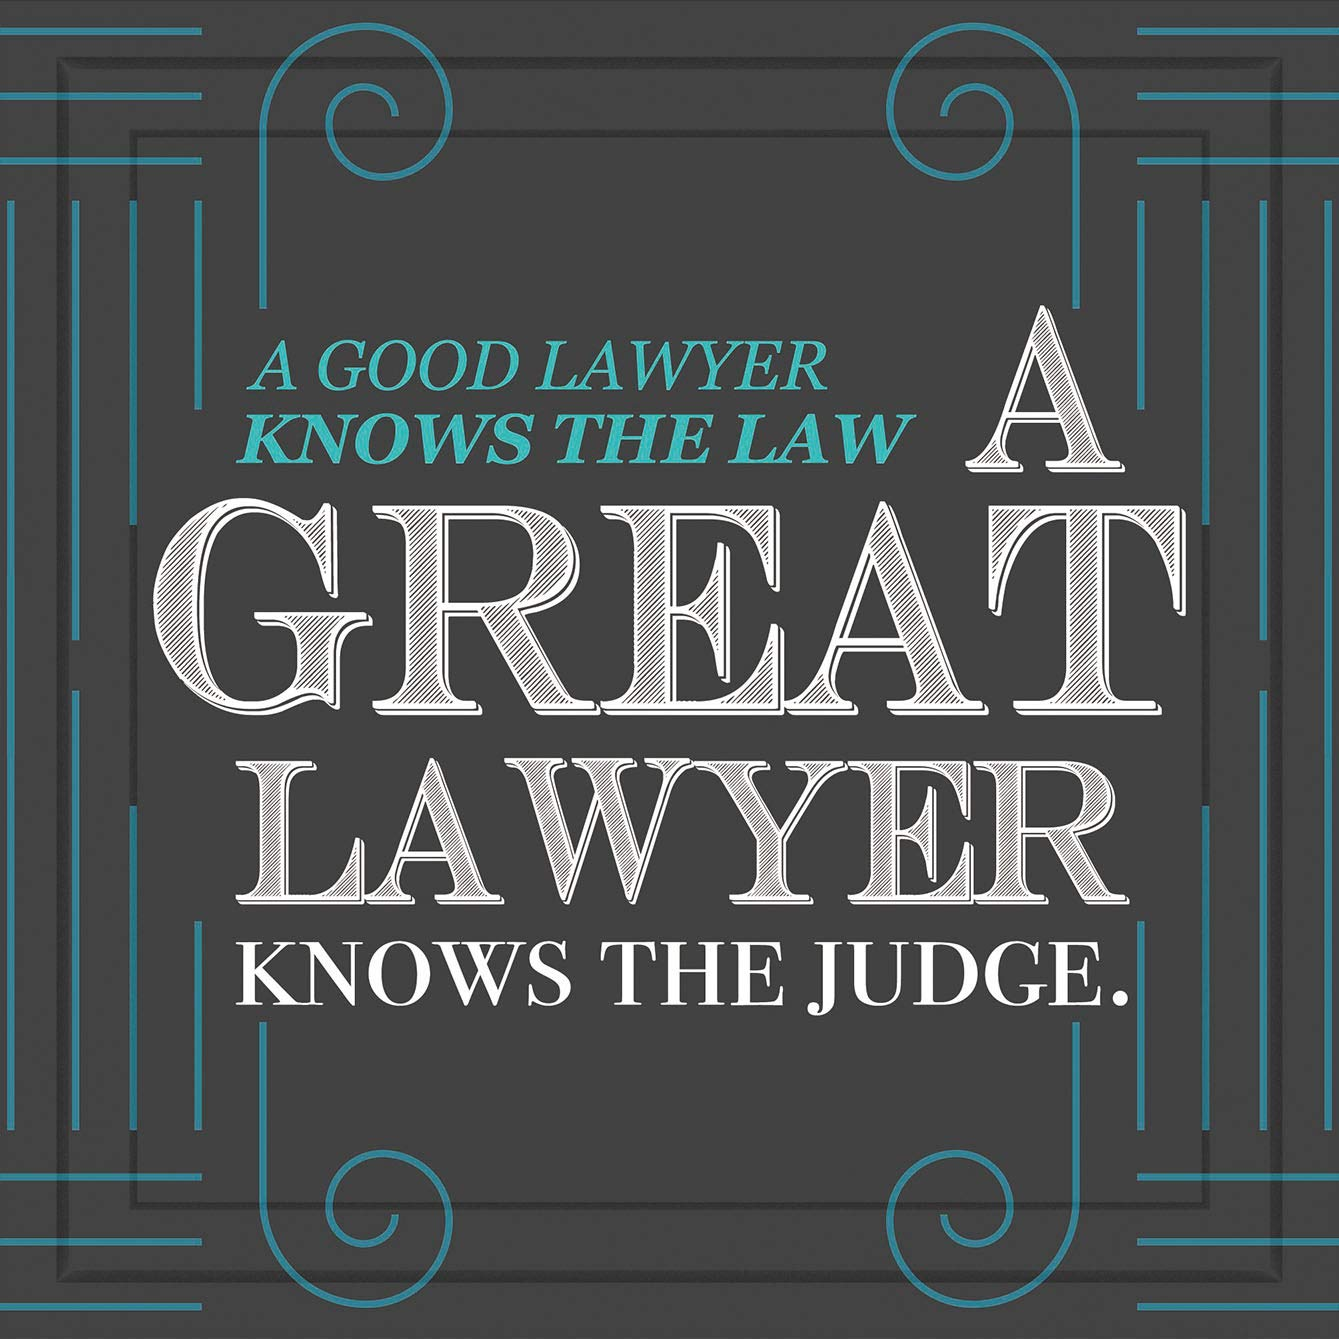 Belly Kicks Gifts for Attorney Men or Women | Inspiring 7x7 Tile Artwork Special for Lawyer | Great Gift Idea for Female or Male Attorneys | Ideal Present for Home or Office Decor